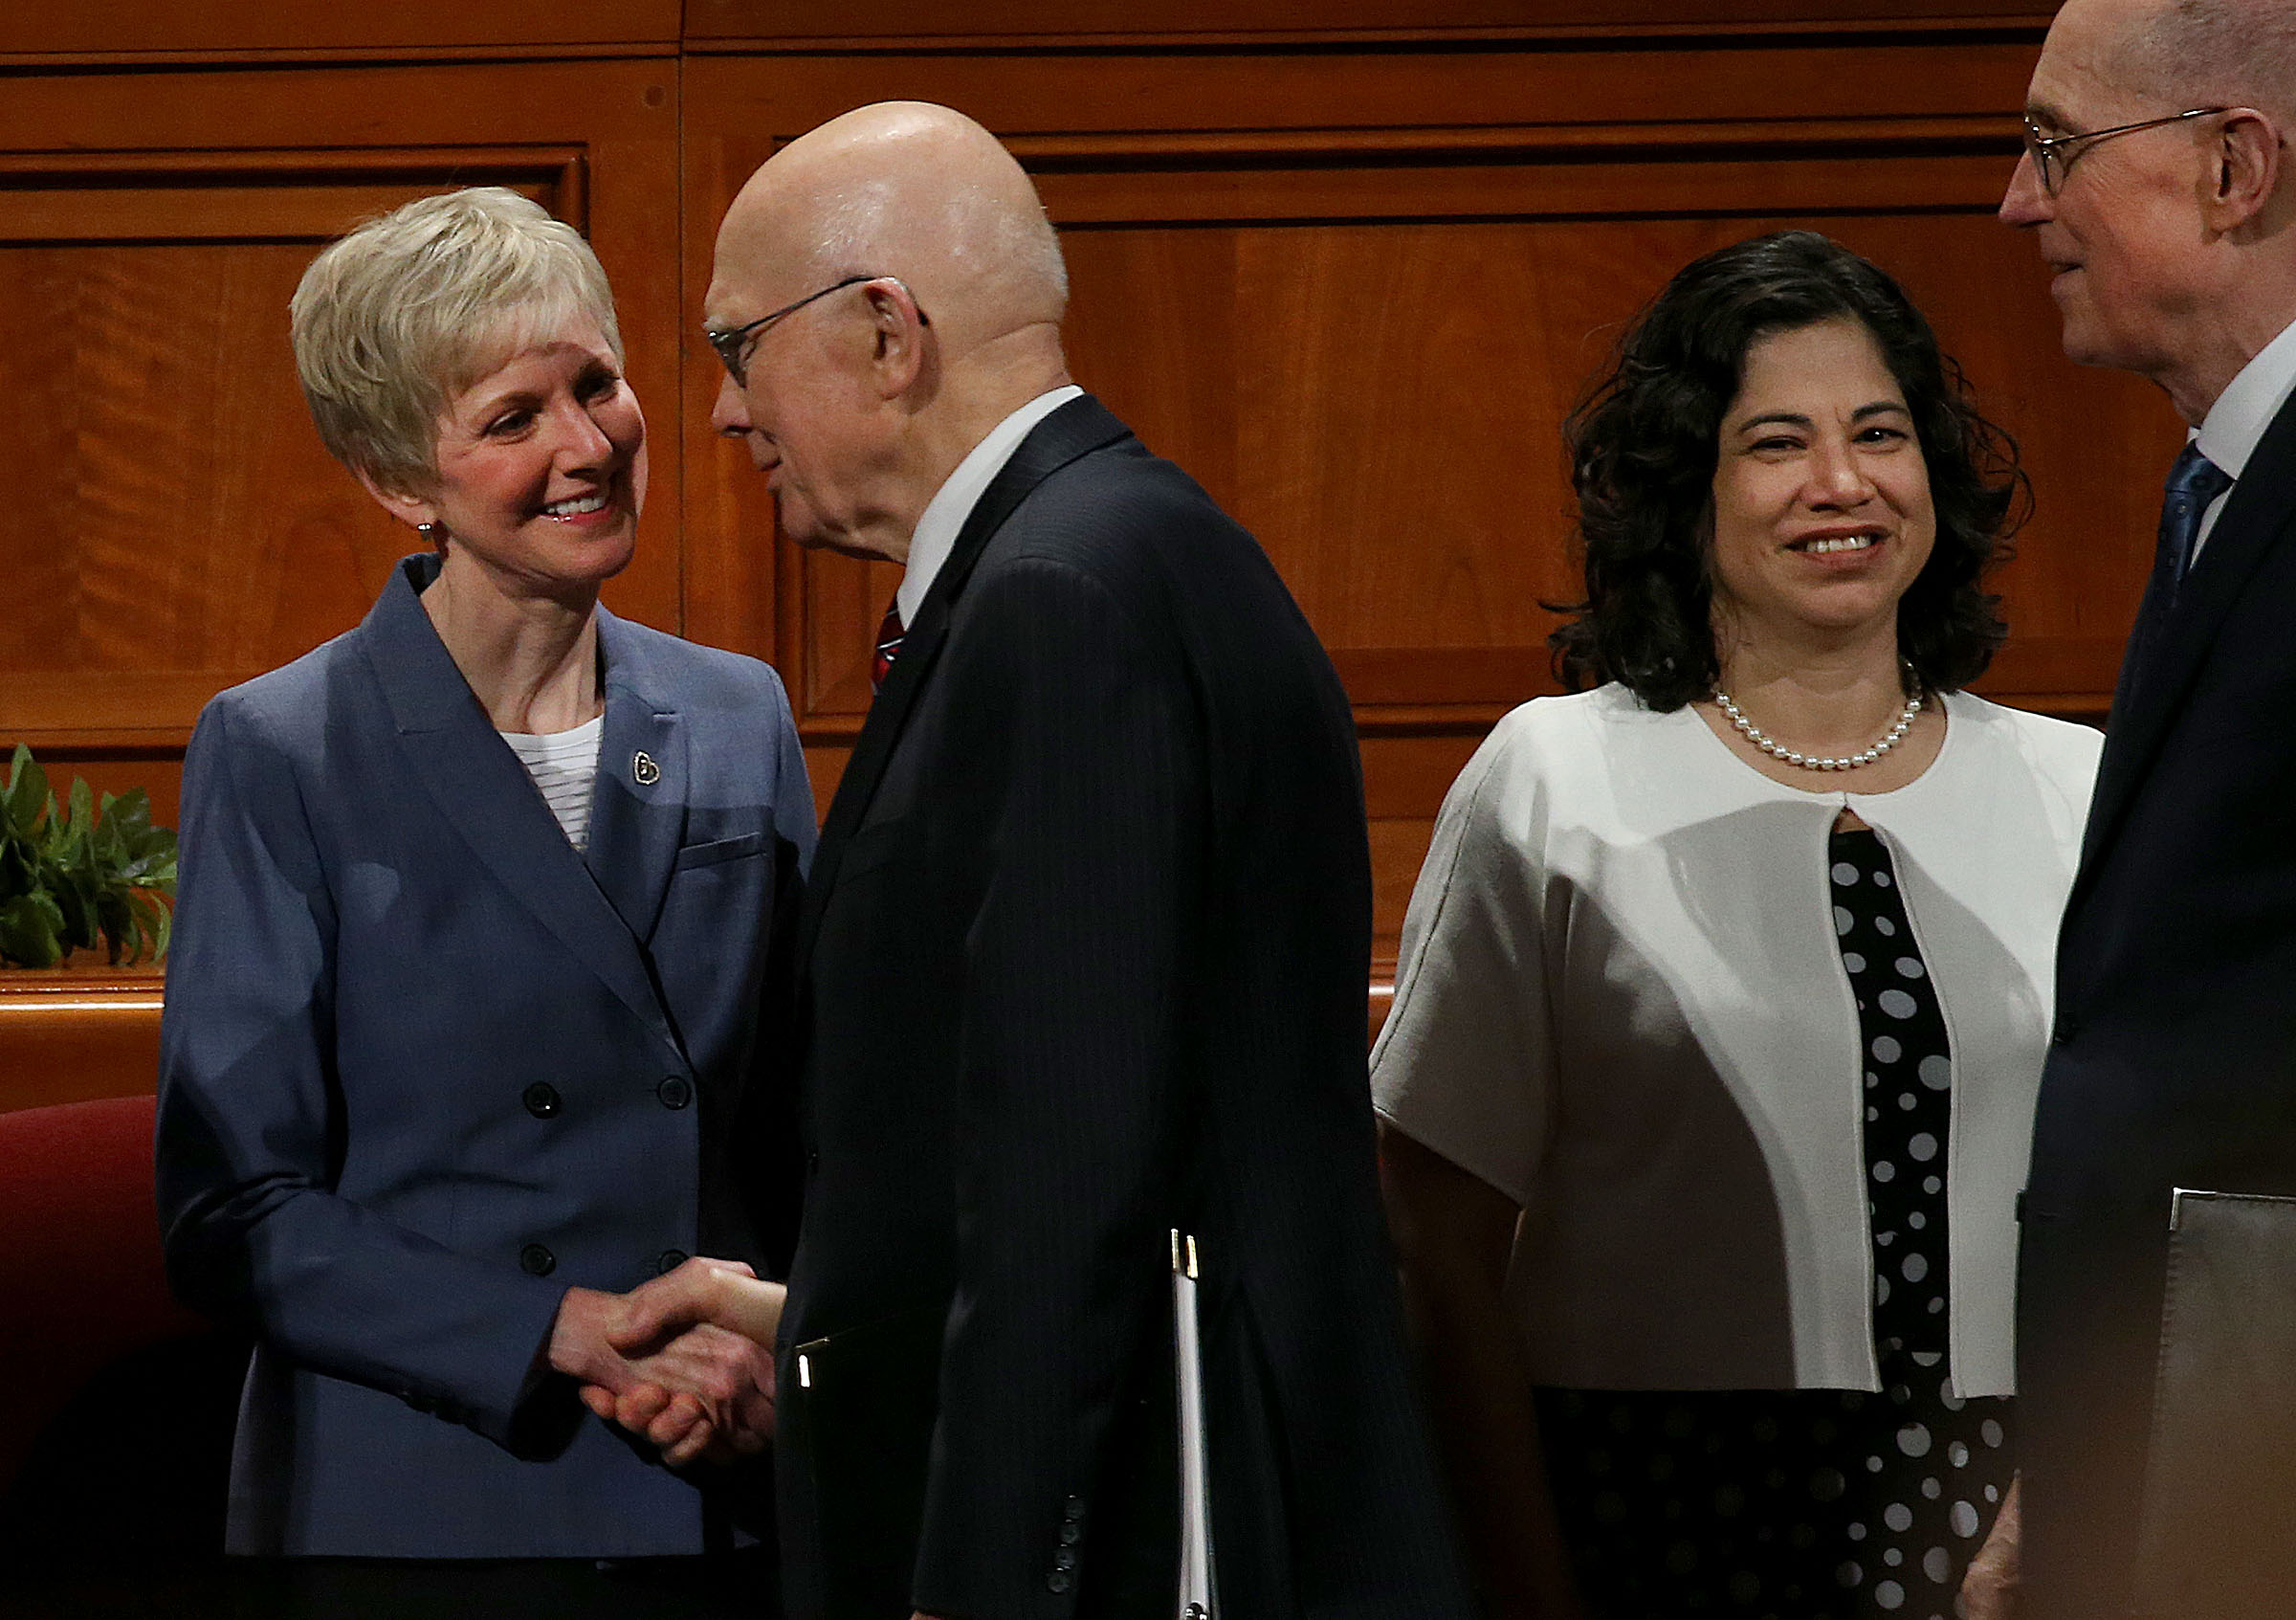 Sister Jean Bingham, left, Relief Society general president, greets President Dallin H. Oaks, first counselor in the First Presidency, speaks during the general women's session of the 188th Semiannual General Conference of The Church of Jesus Christ of Latter-day Saints held in the Conference Center in downtown Salt Lake City on Saturday, Oct. 6, 2018. At right is Sister Rayna Alburto, second counselor of the Relief Society general presidency and President Henry B. Eyring, second counselor in the First Presidency.